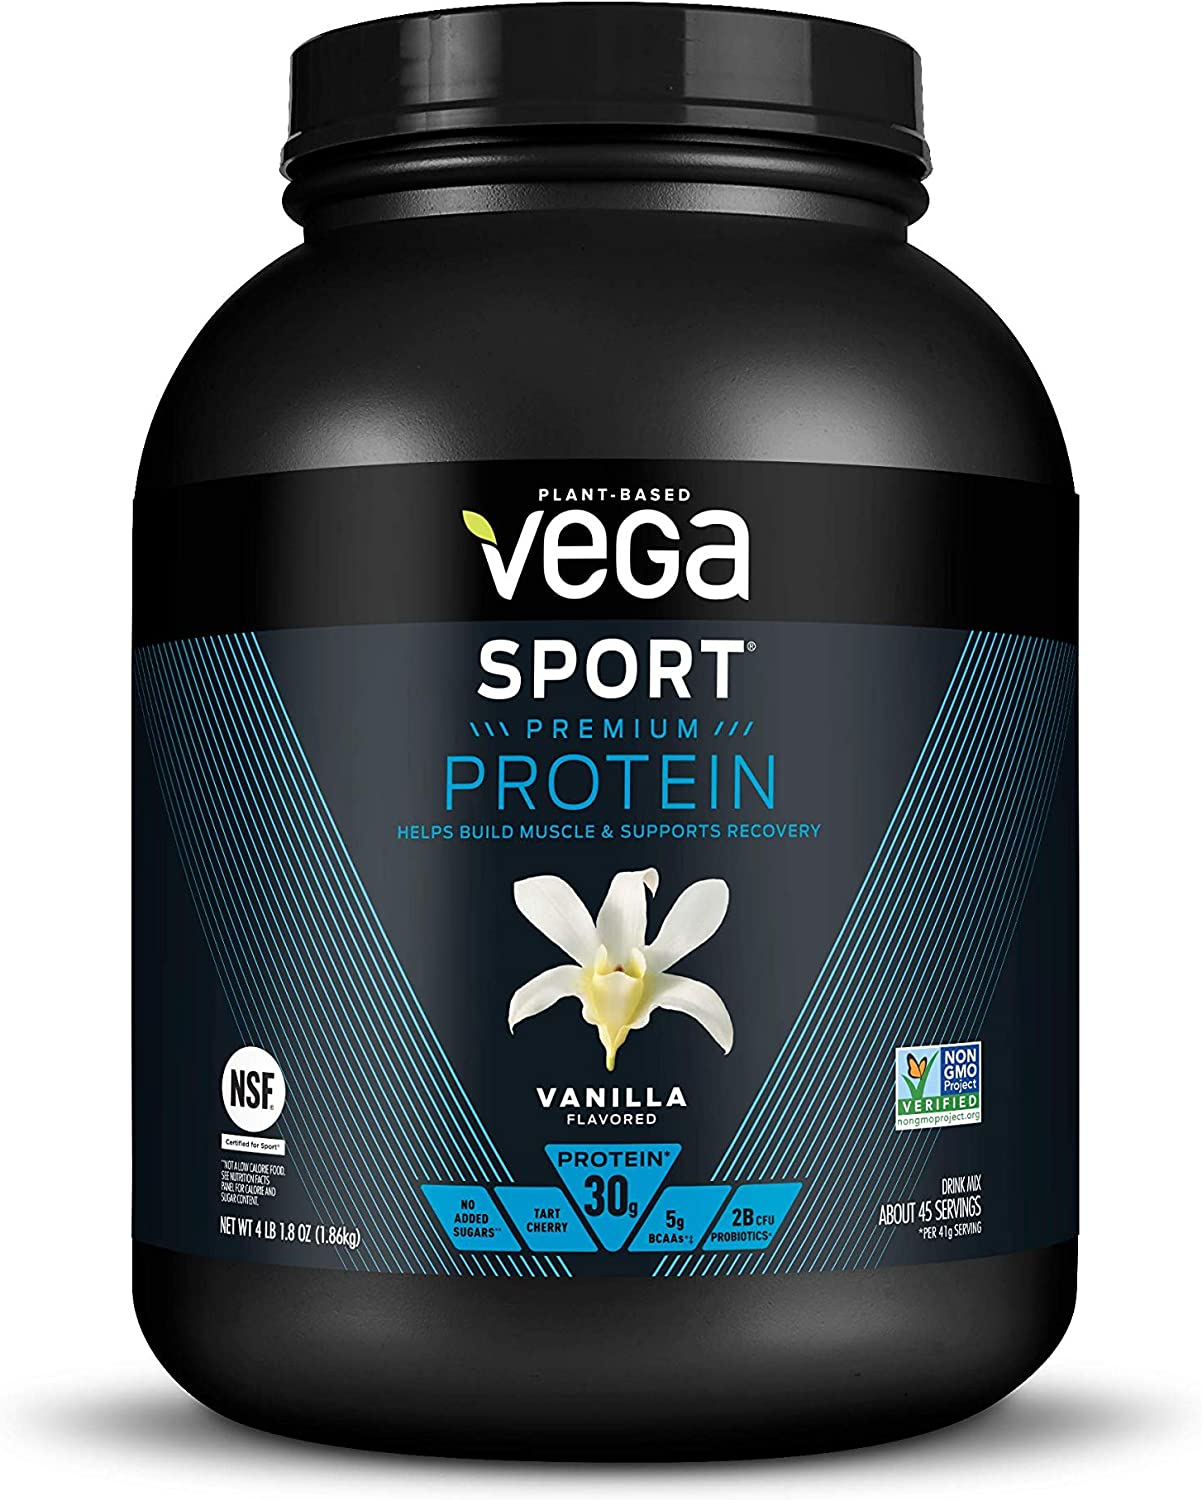 Vega Sport Protein Powder Vanilla (45 Servings, 65.8 Ounce) Plant Based Vegan Protein Powder, BCAAs, Amino Acids, Tart Cherry, Non Dairy, Keto-Friendly, Gluten Free,Non GMO (Packaging May Vary)